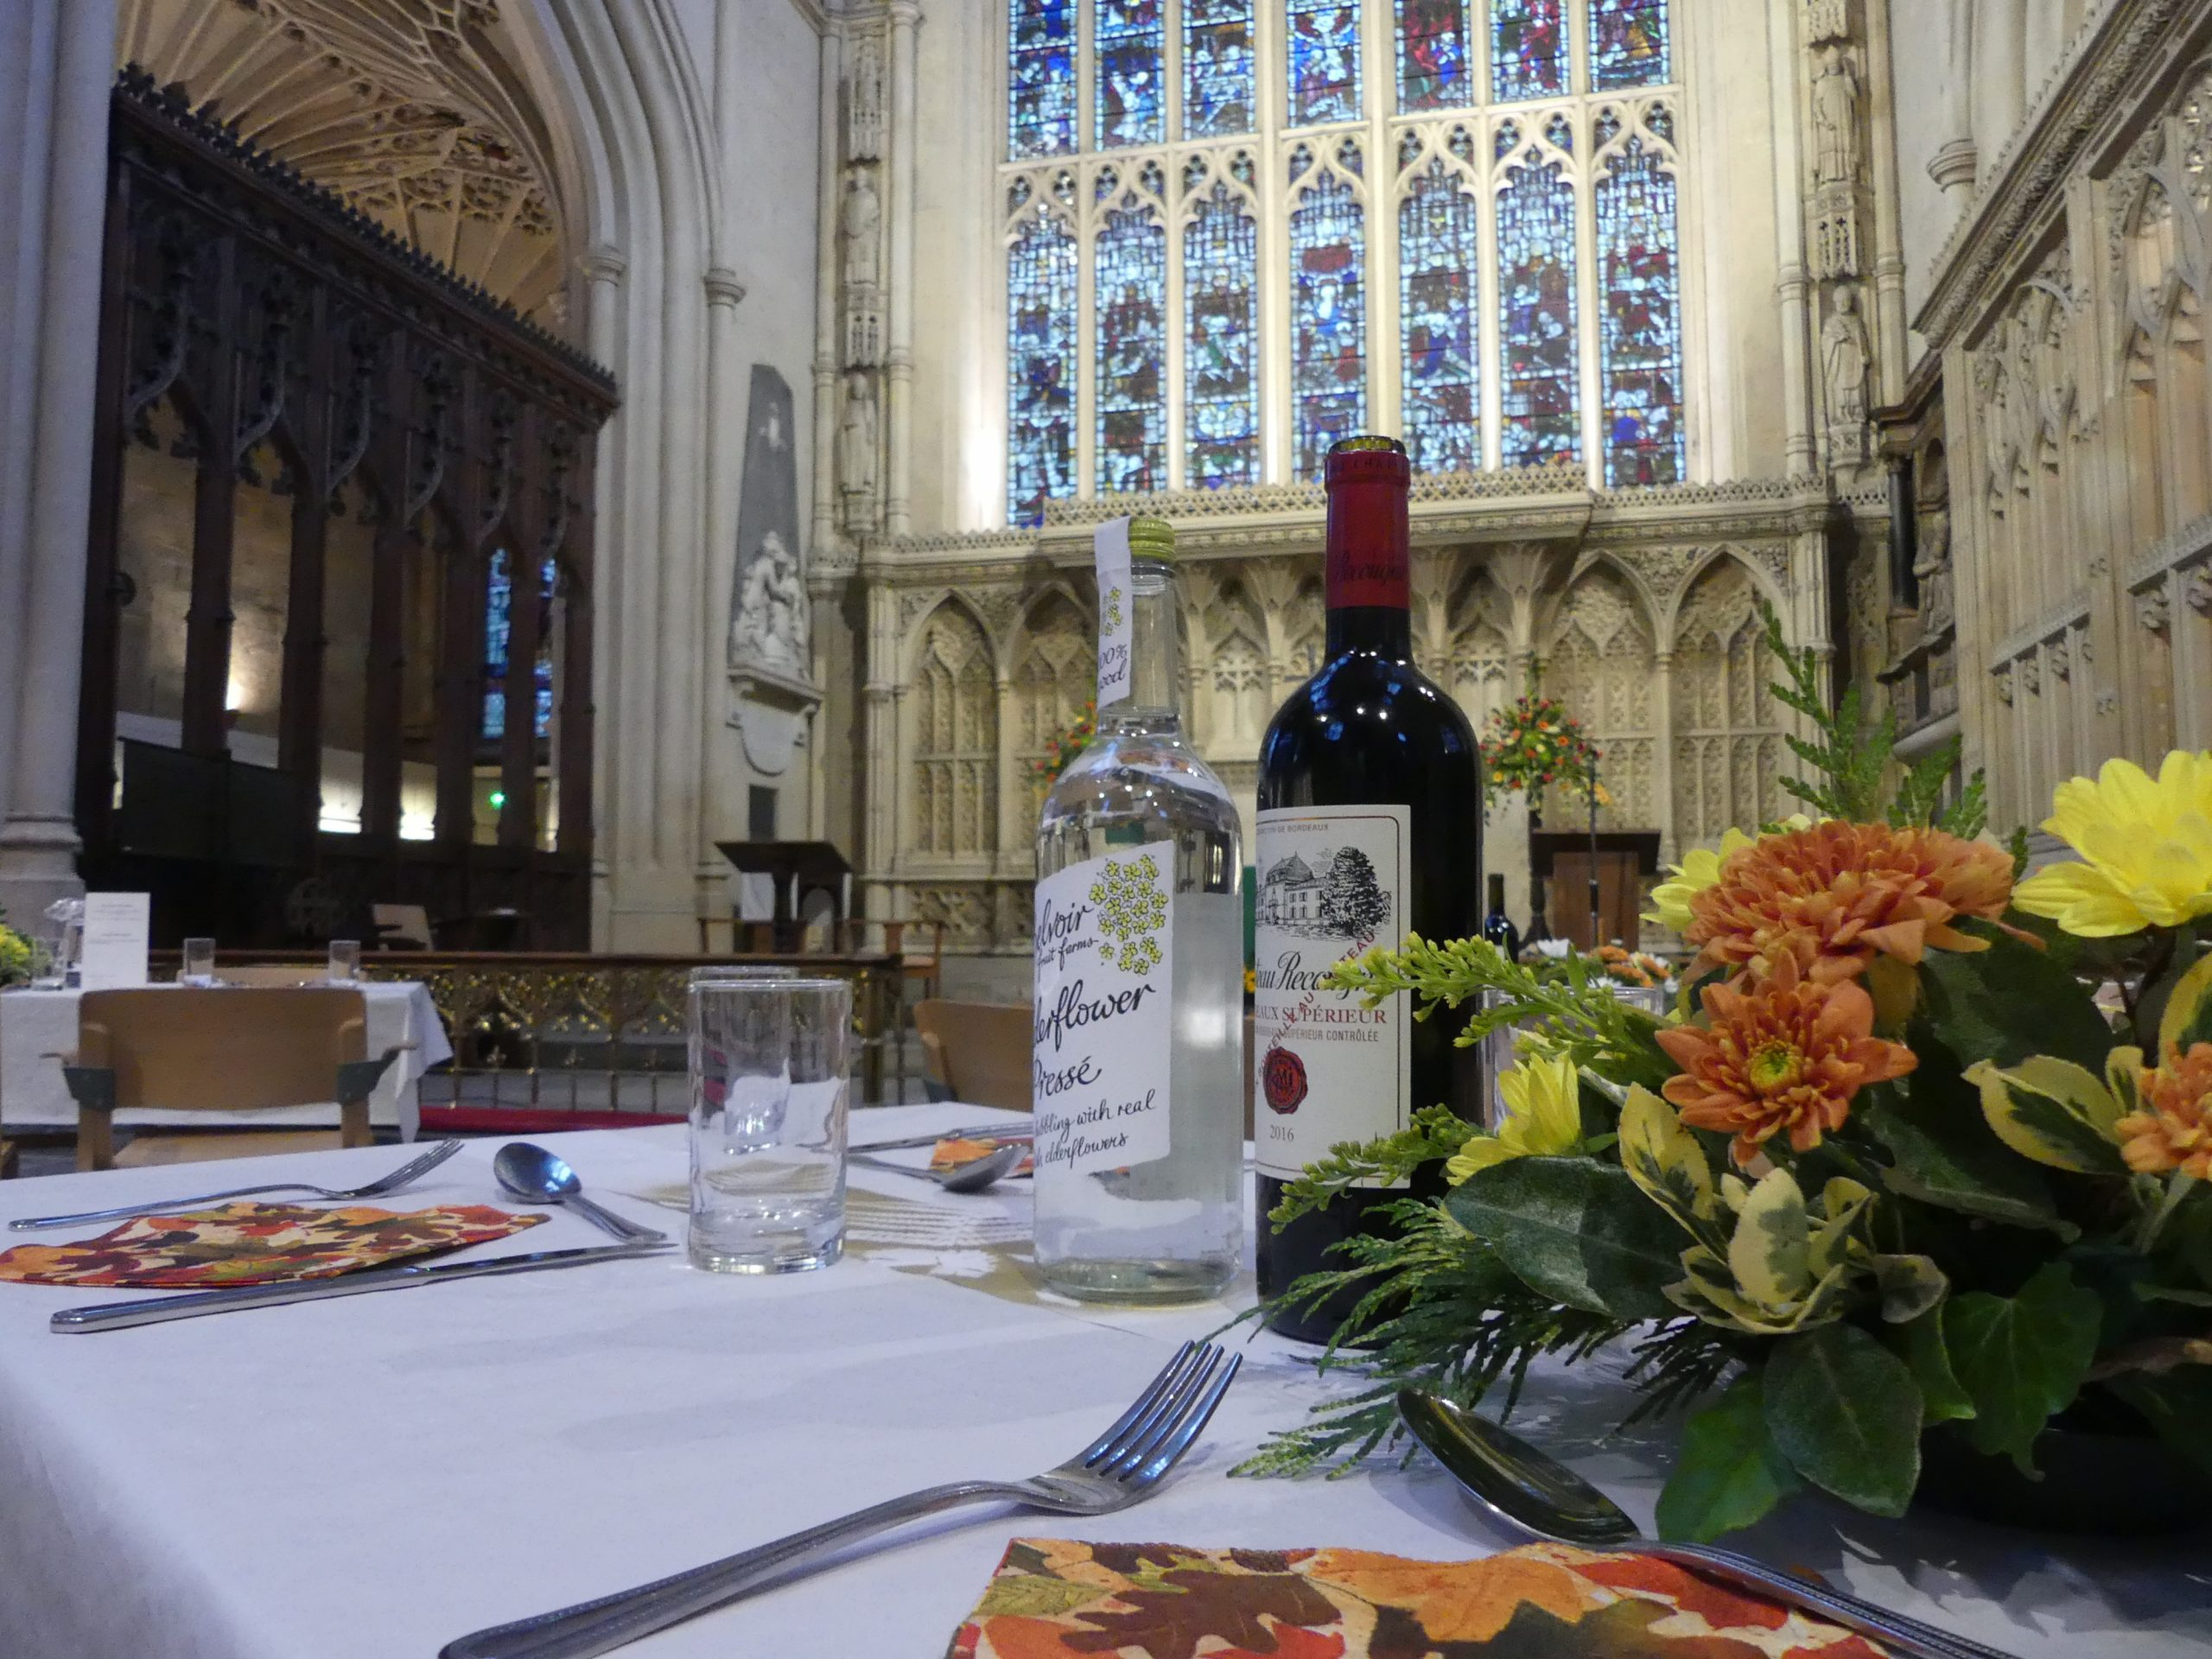 Table laid with two bottles of drink for Harvest Dinner in the foreground of Bath Abbey